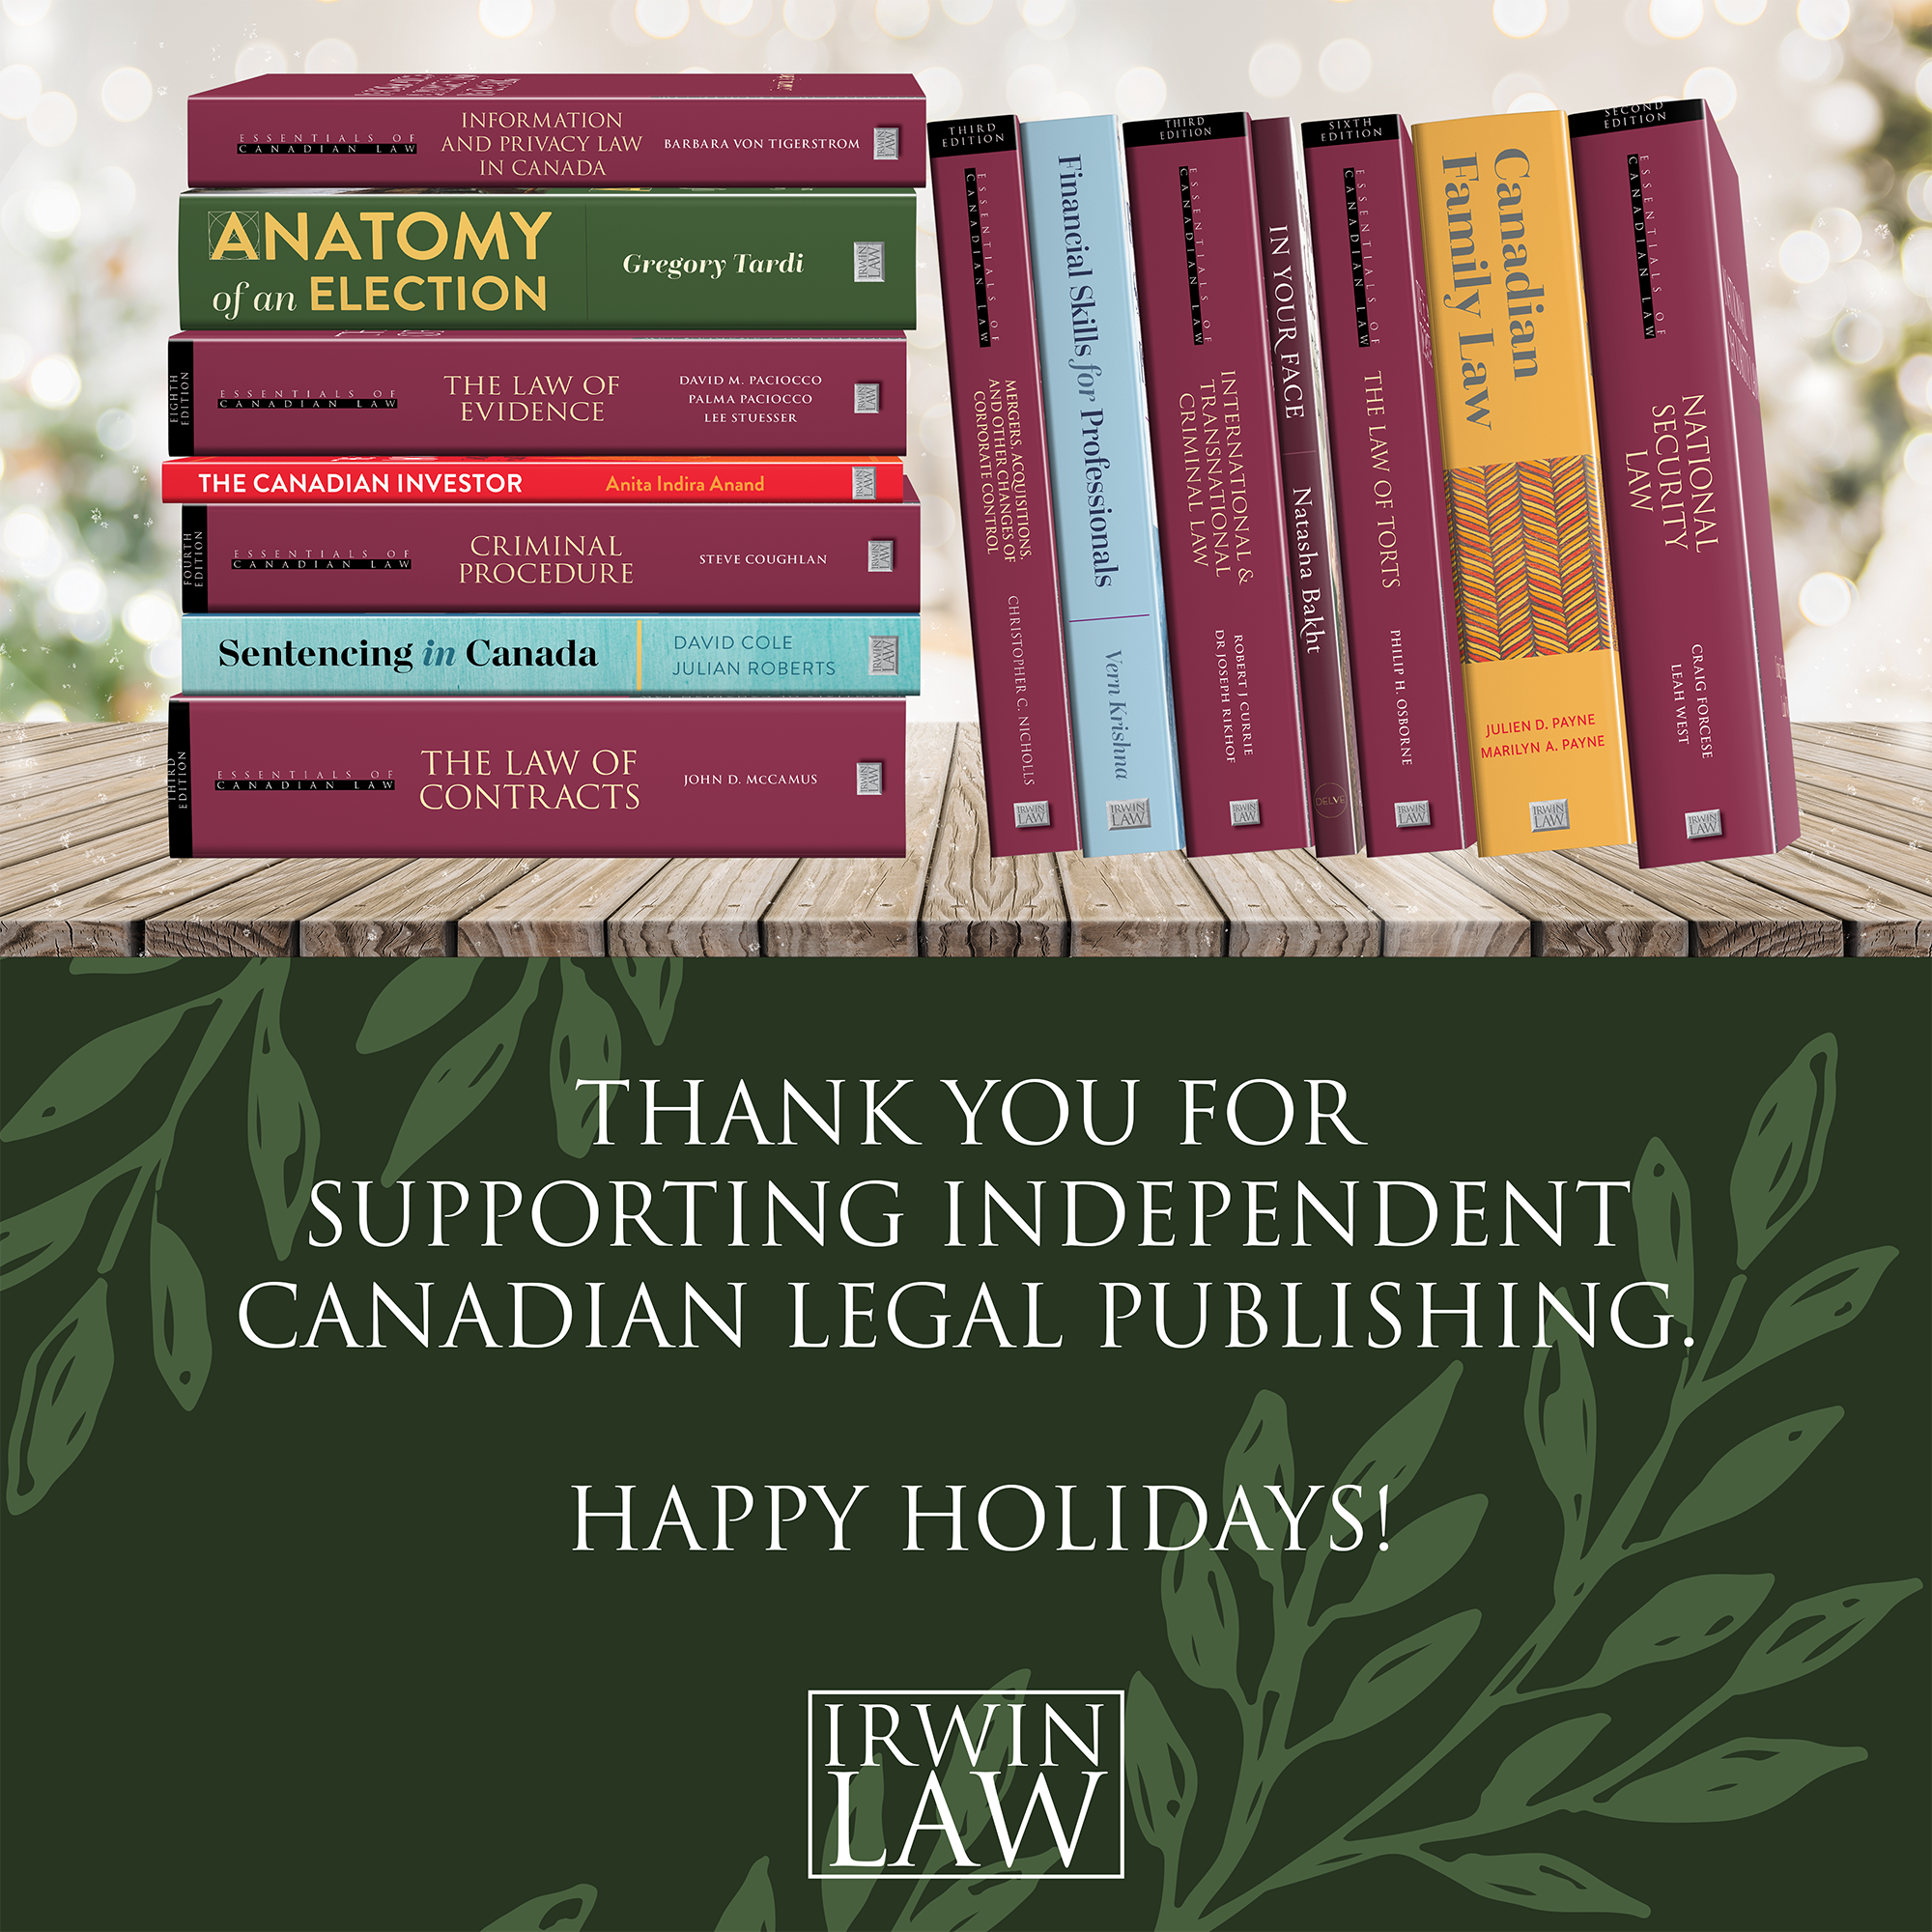 """Wiintery table with a stack showing fifteen books published by Irwin Law in 2020. The text underneath reads """"Thank you for supporting independent Canadian legal publishing. Happy holidays!"""""""